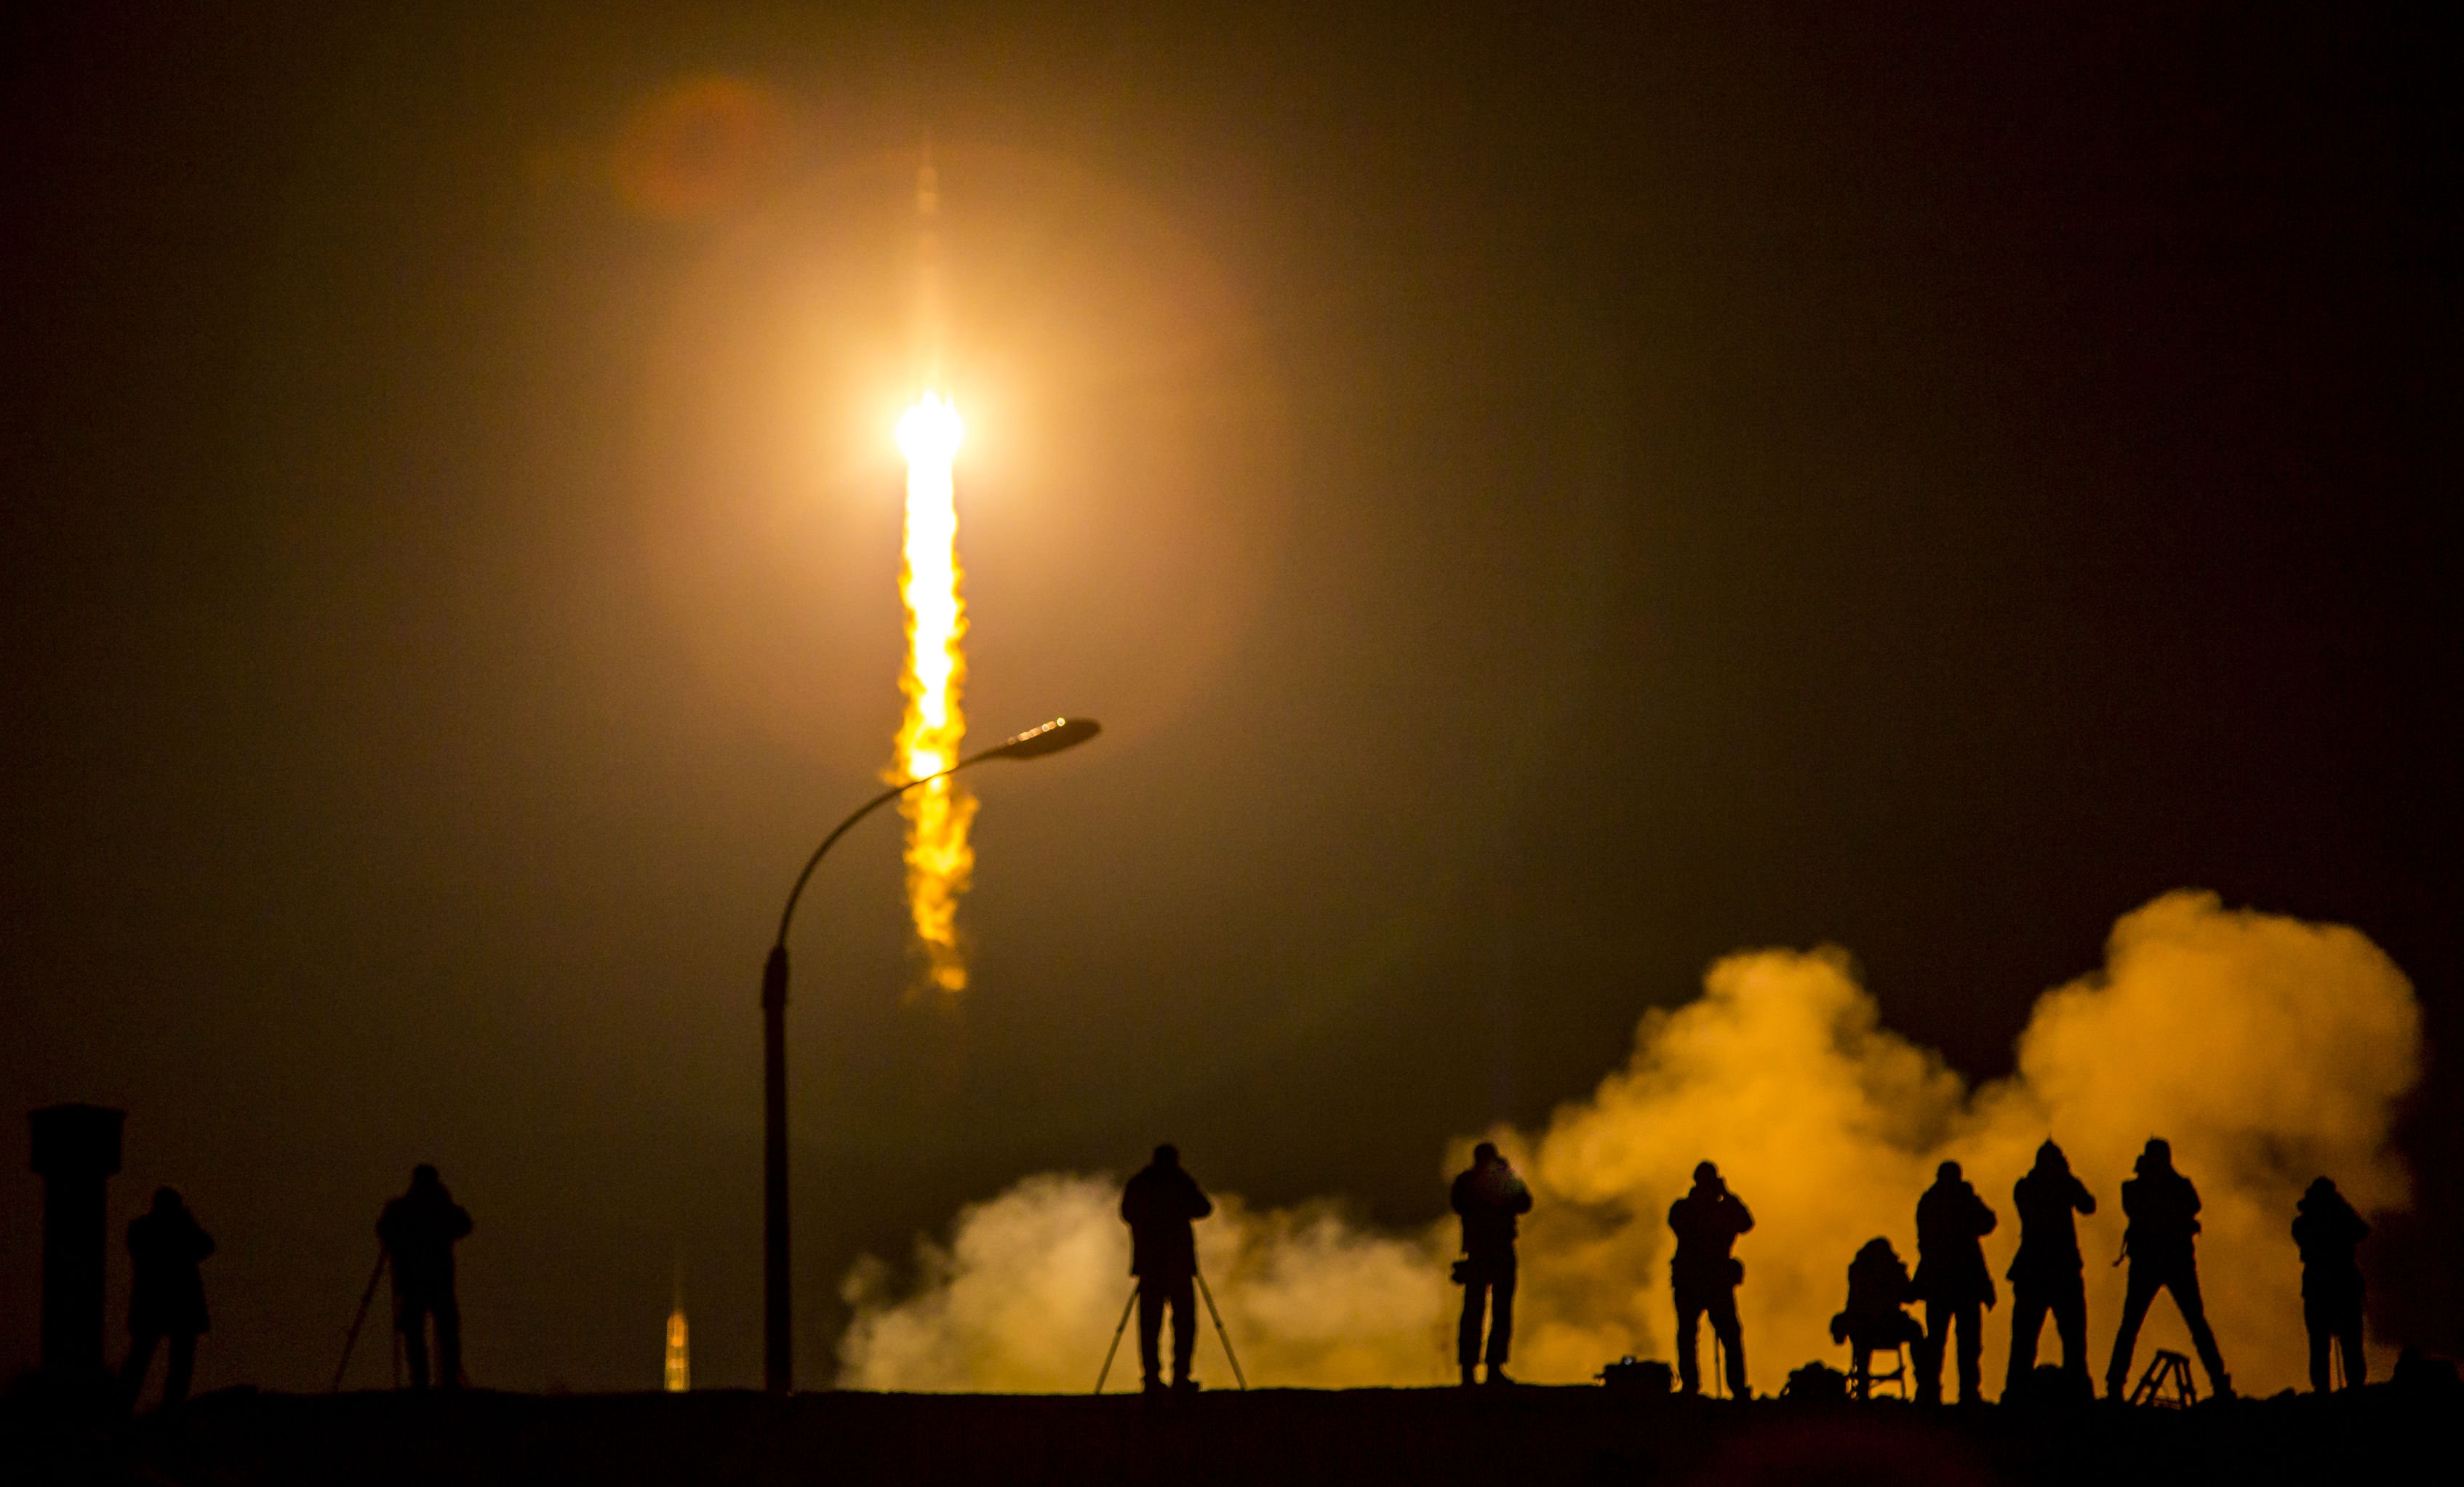 The Soyuz TMA-16M spacecraft launching to the International Space Station with NASA Astronaut Scott Kelly and Russian Cosmonauts Mikhail Kornienko and Gennady Padalka onboard, Saturday, March 28, 2015.